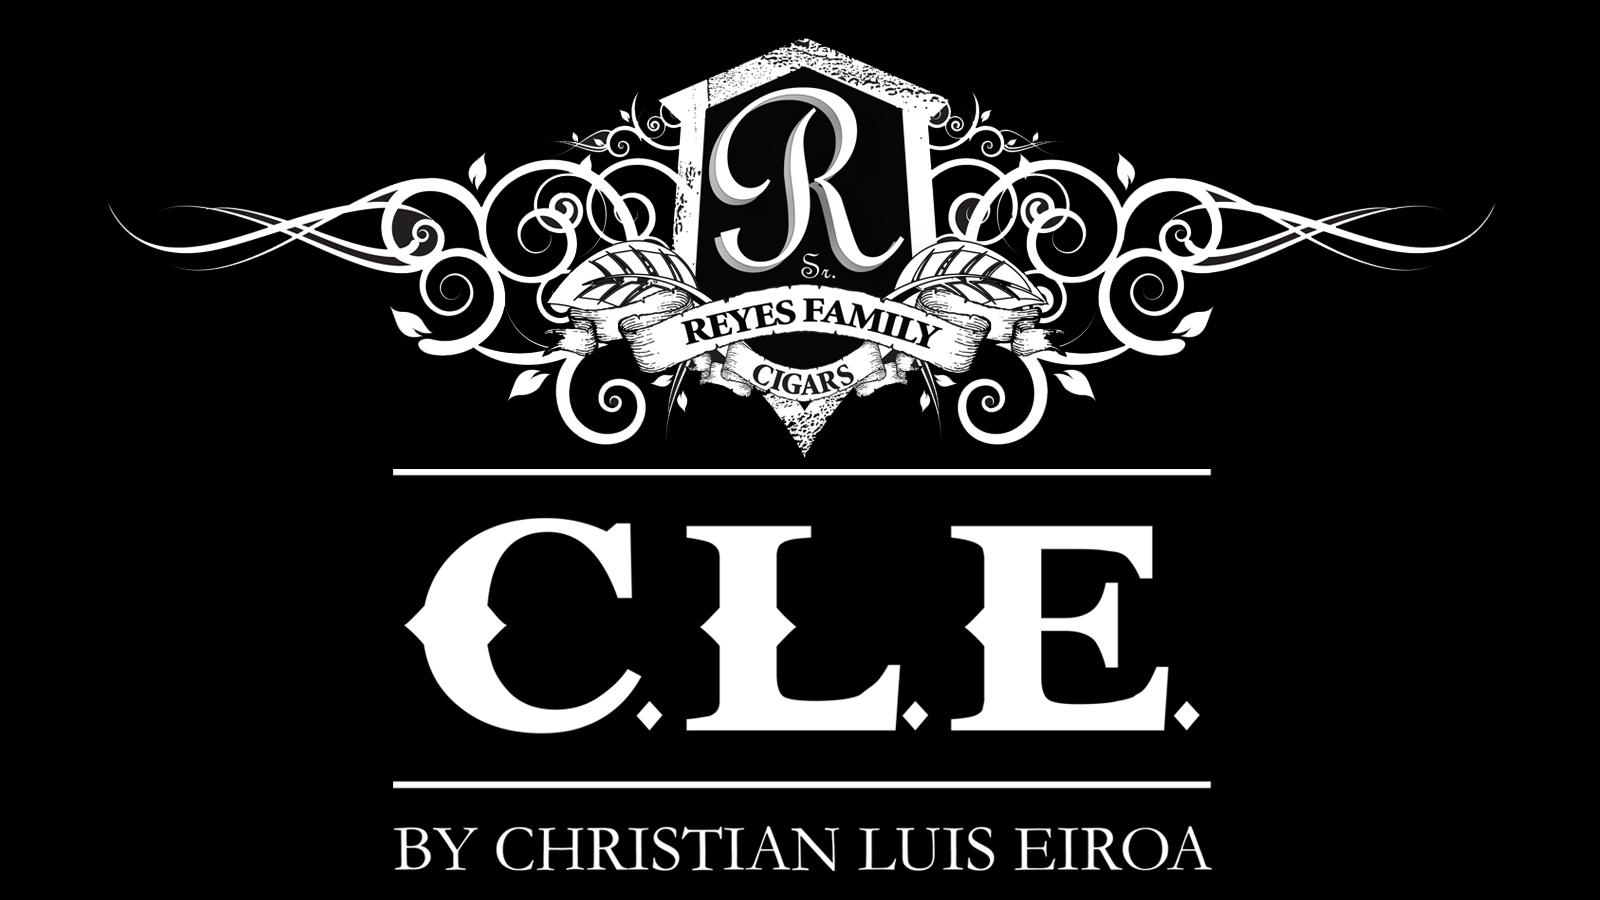 C.L.E. To Distribute Reyes Family Cigars